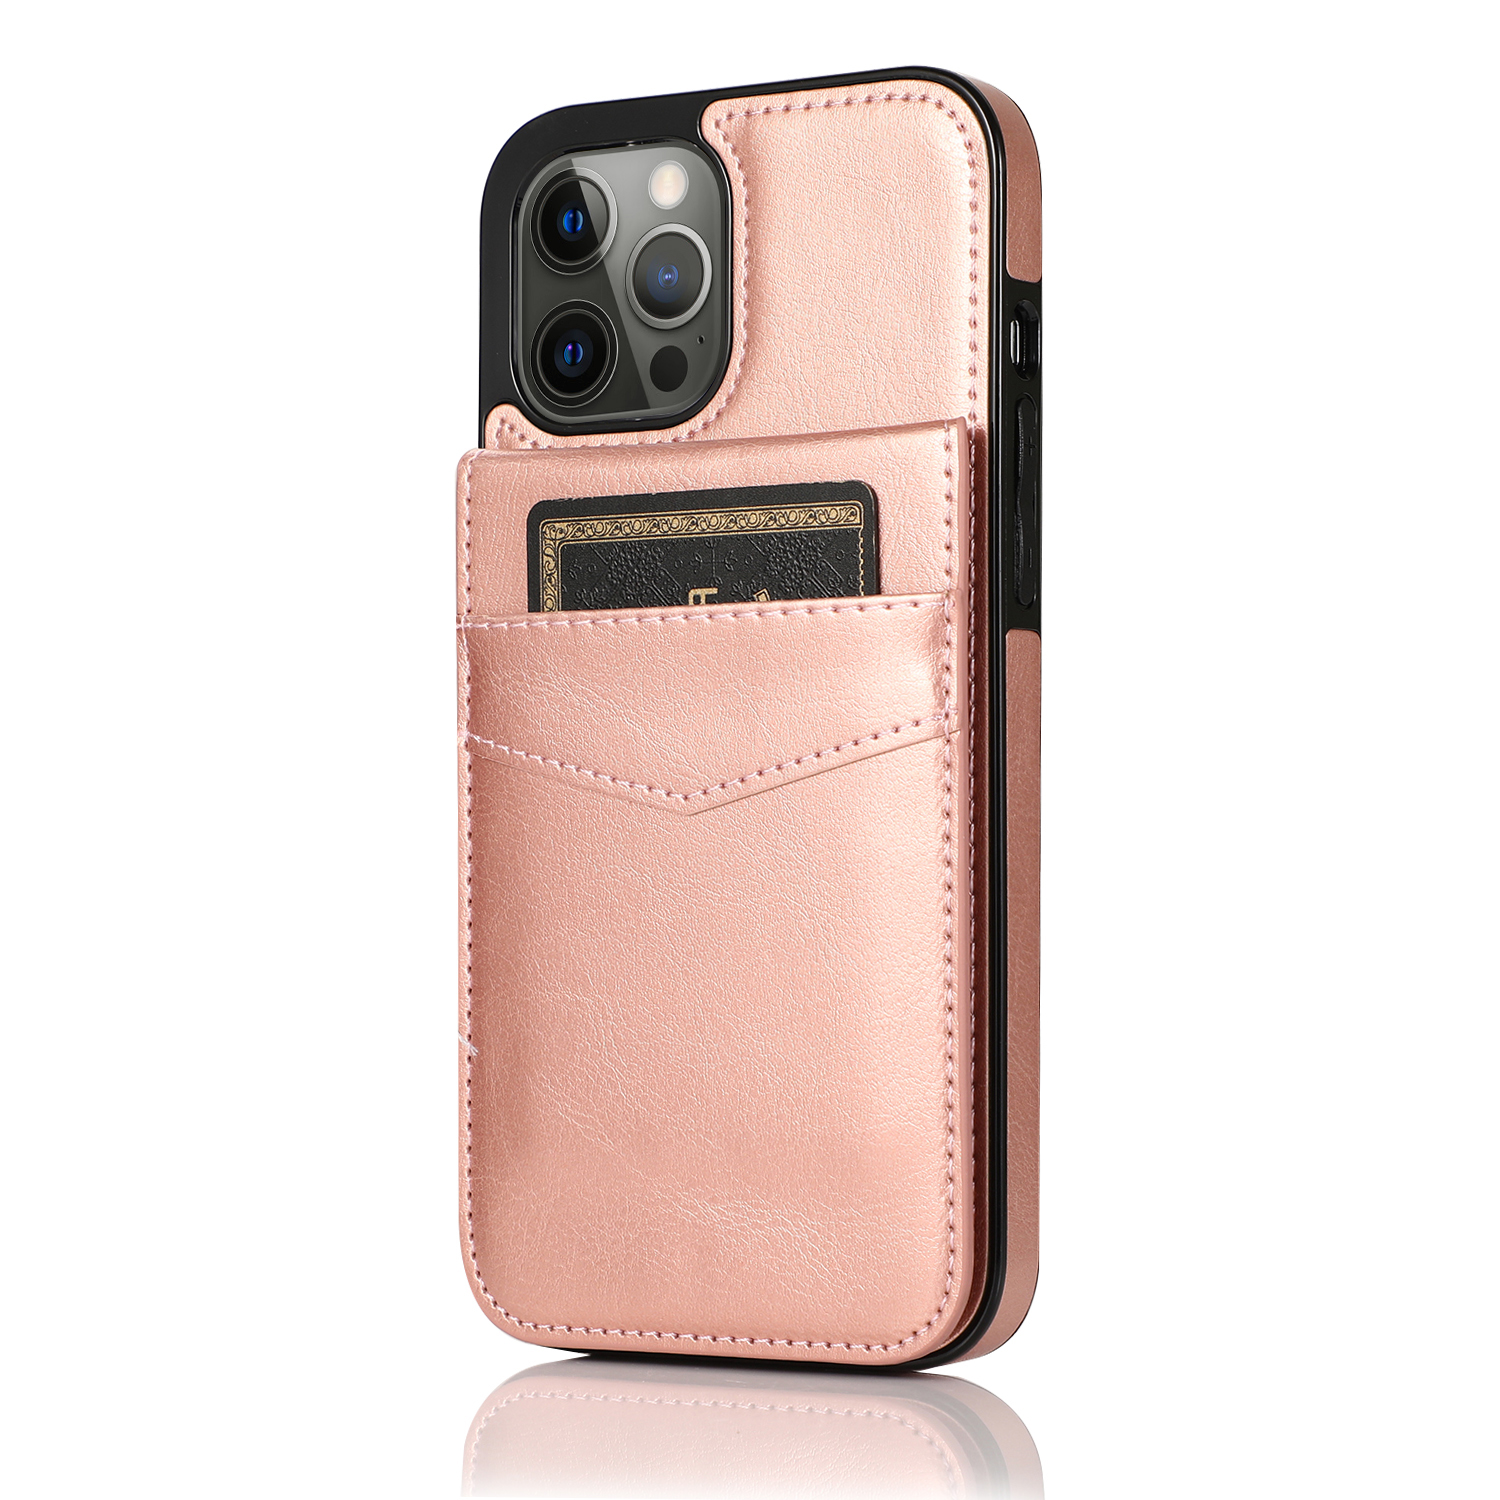 Mobile Phone Case Solid Color Plug-in Card Protective Case Cover For Iphone12 Rose gold_iphone 12promax 6.7